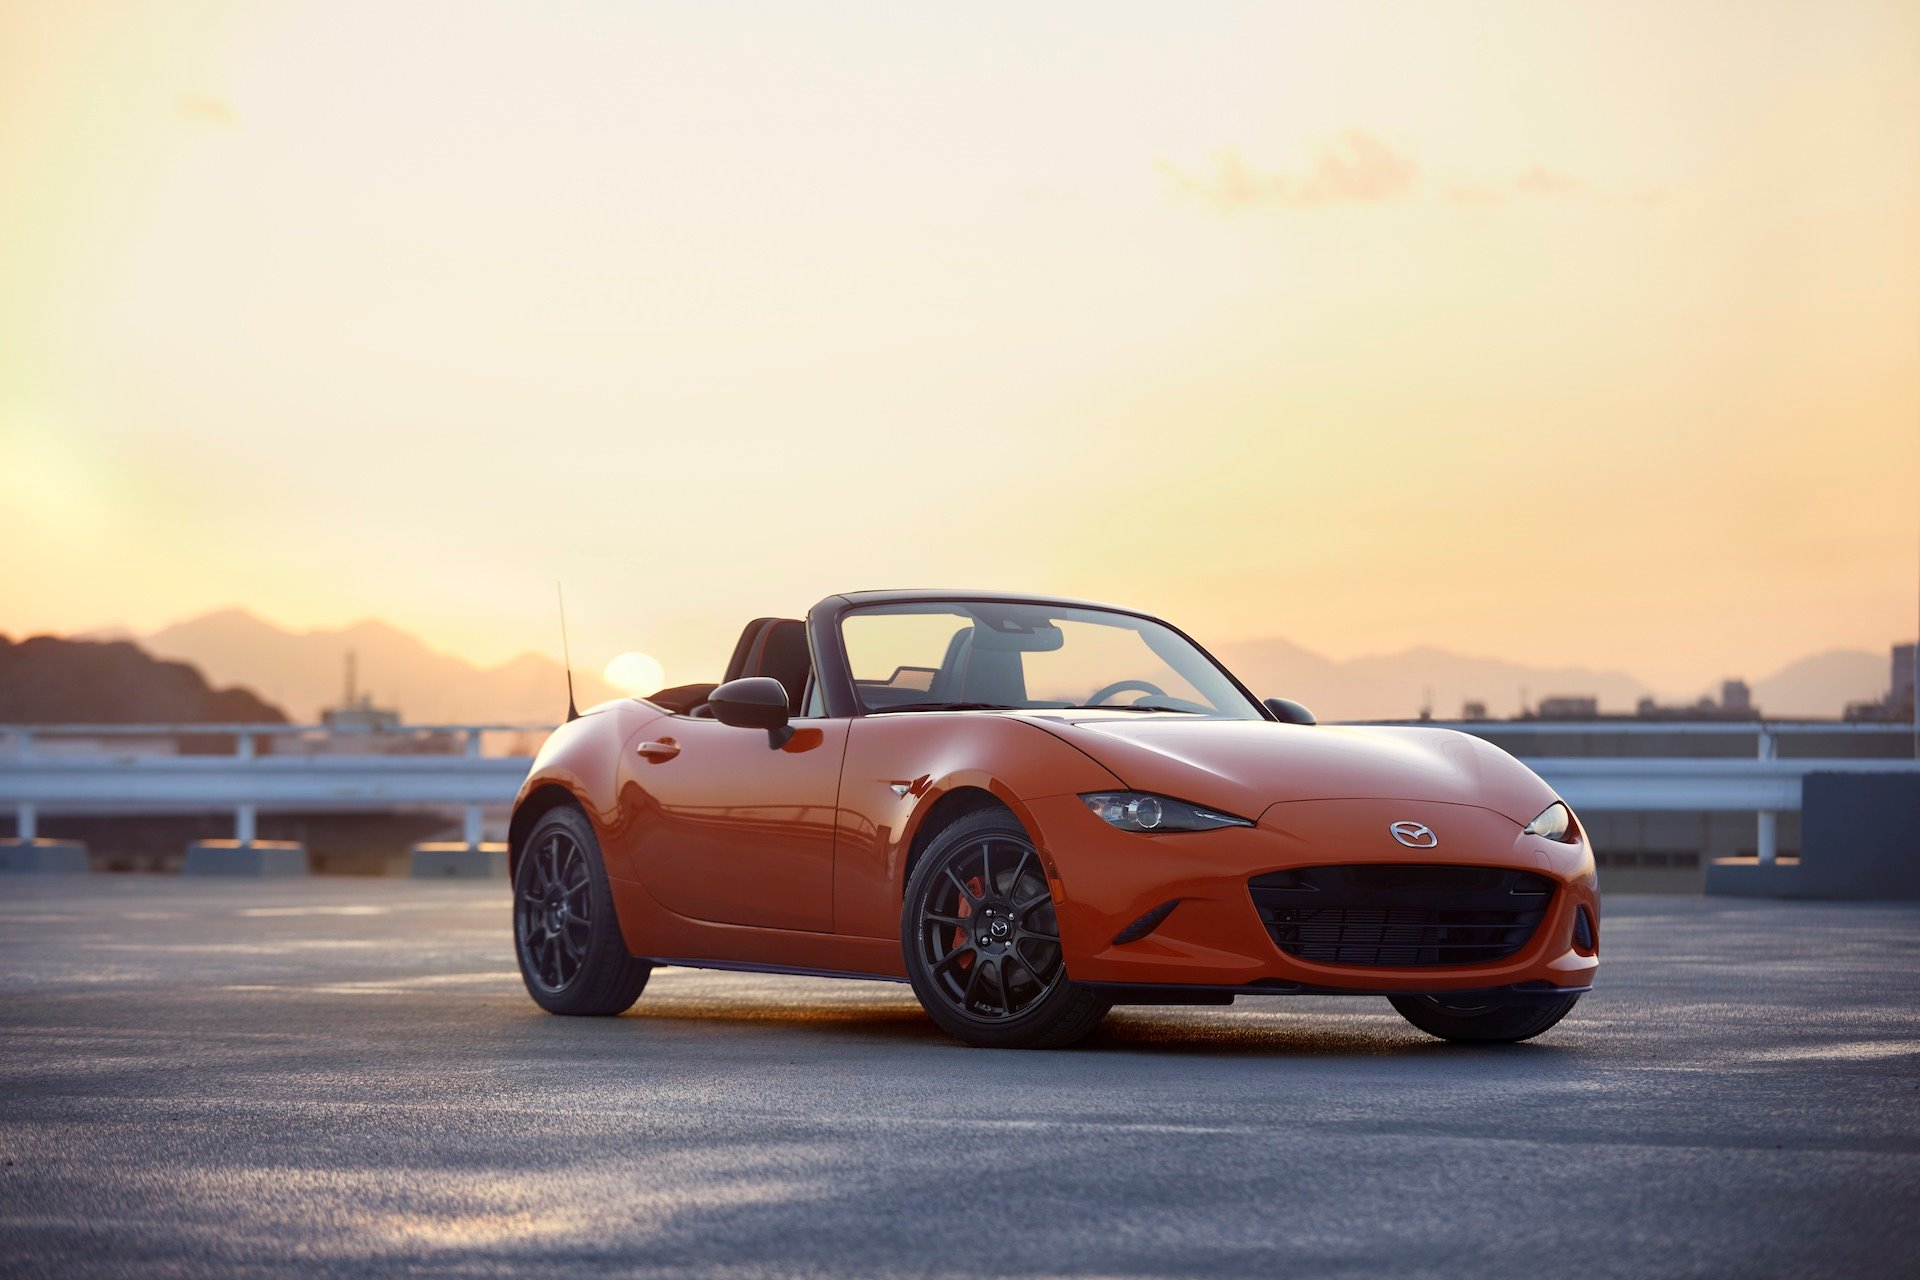 New 2019 Mazda-MX-5 Miata Sport MX-5 Miata Sport for sale $25,730 at M and V Leasing in Brooklyn NY 11223 1